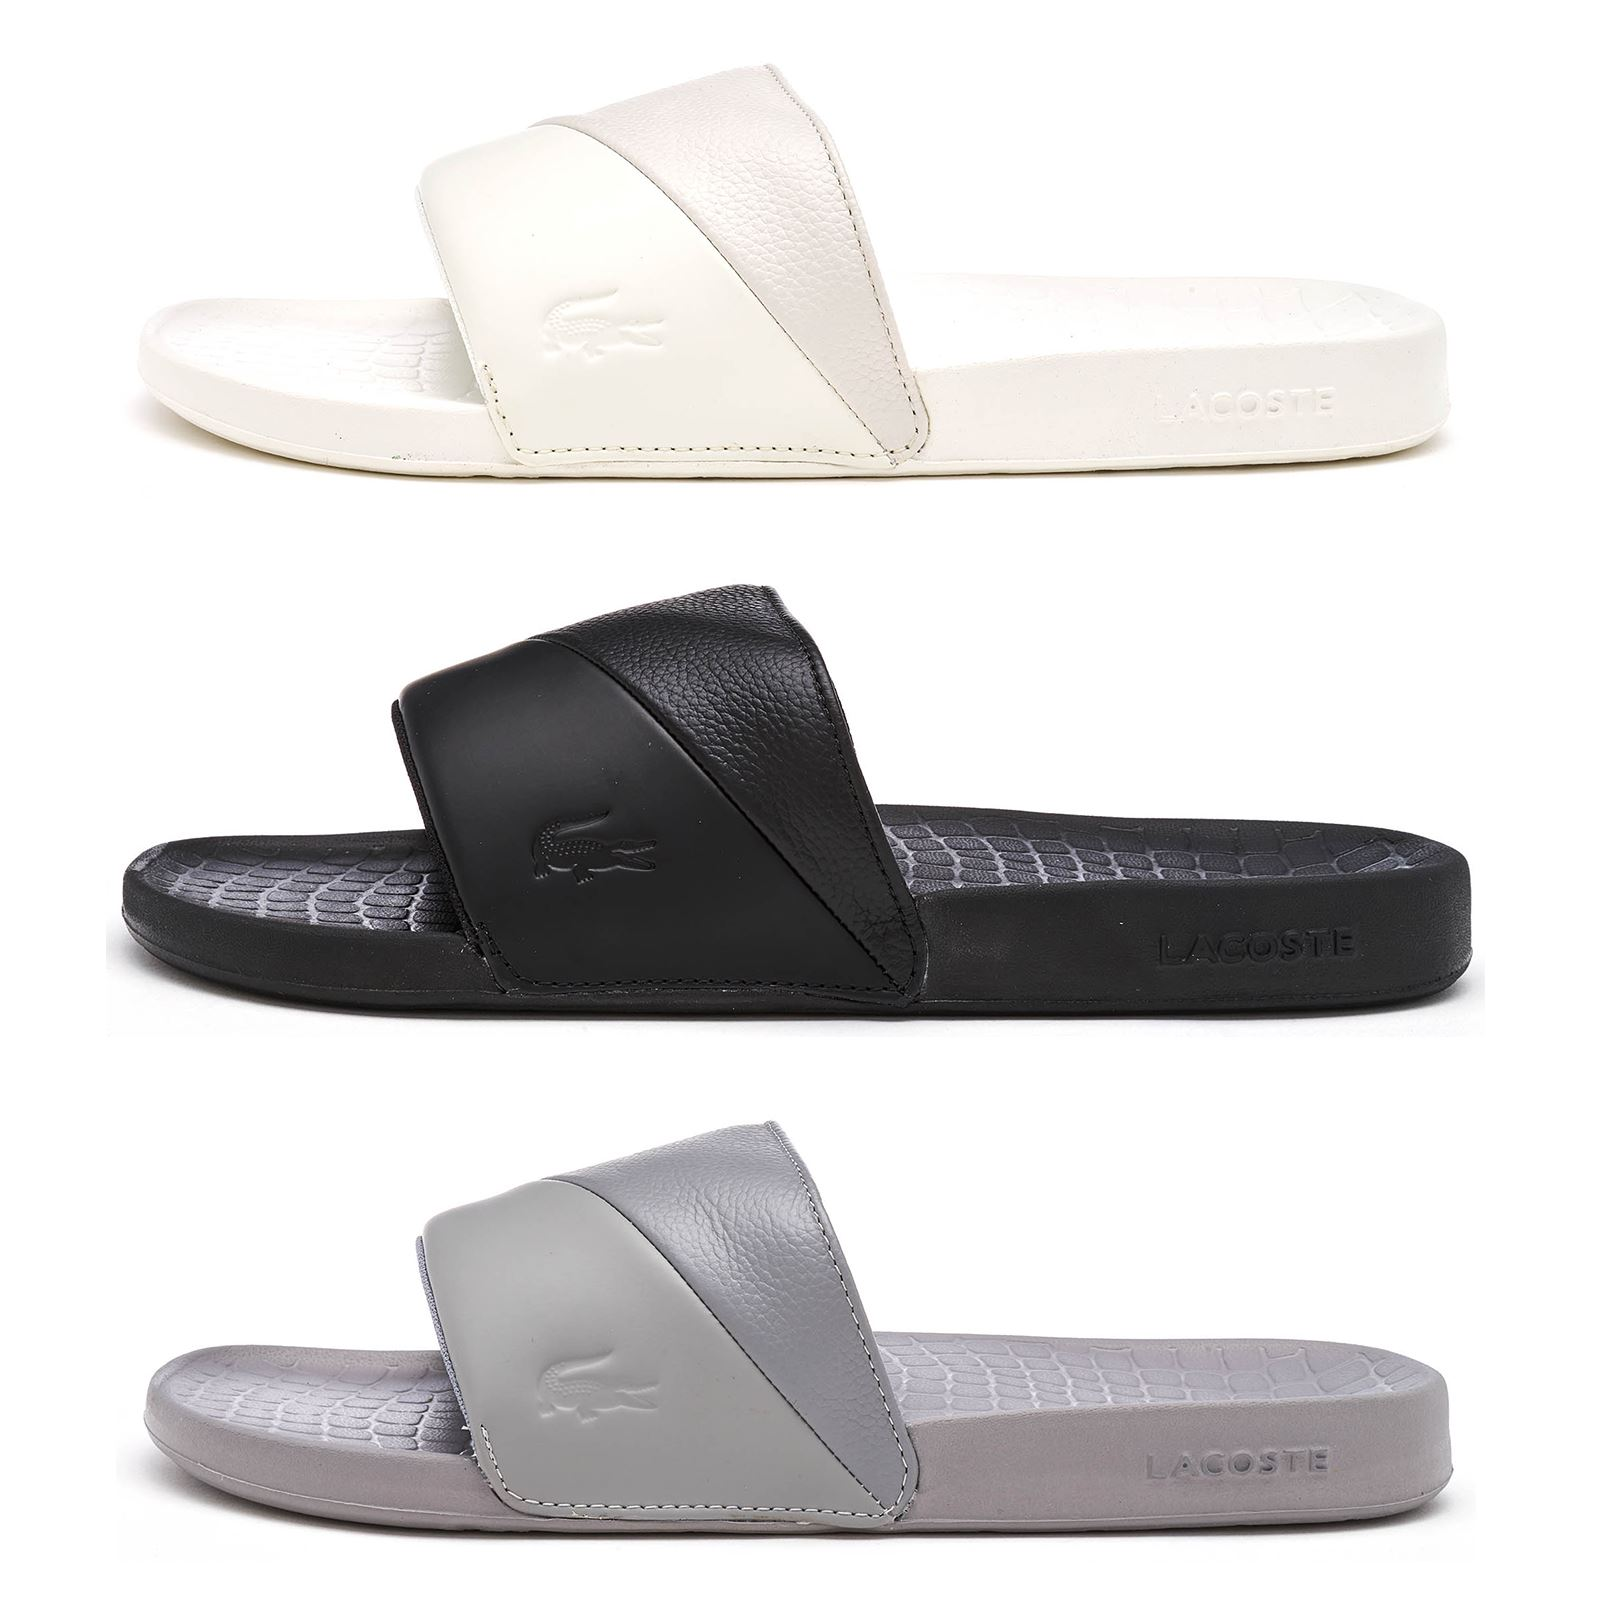 75ffc9be1e93 Details about Lacoste Fraisier 118 3 U Slide Pool Beach Premium Sandals in  Black